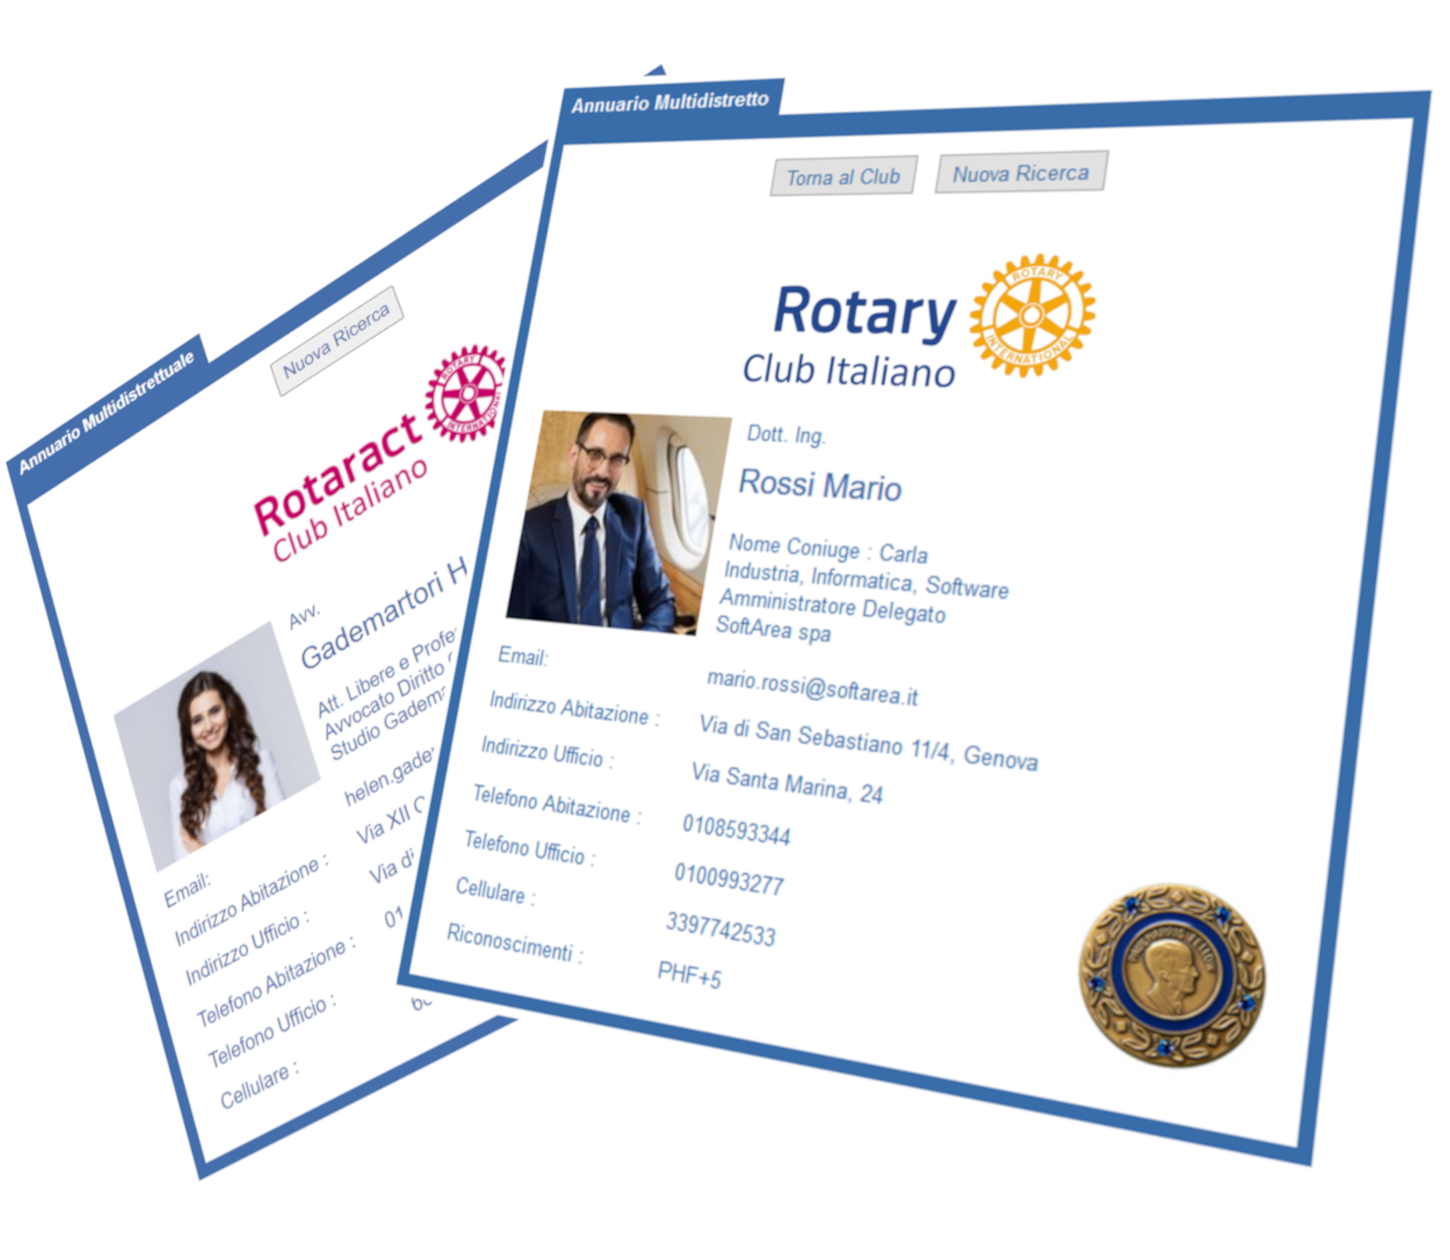 Annuario Multideistrettuale Rotary e Rotaract Club